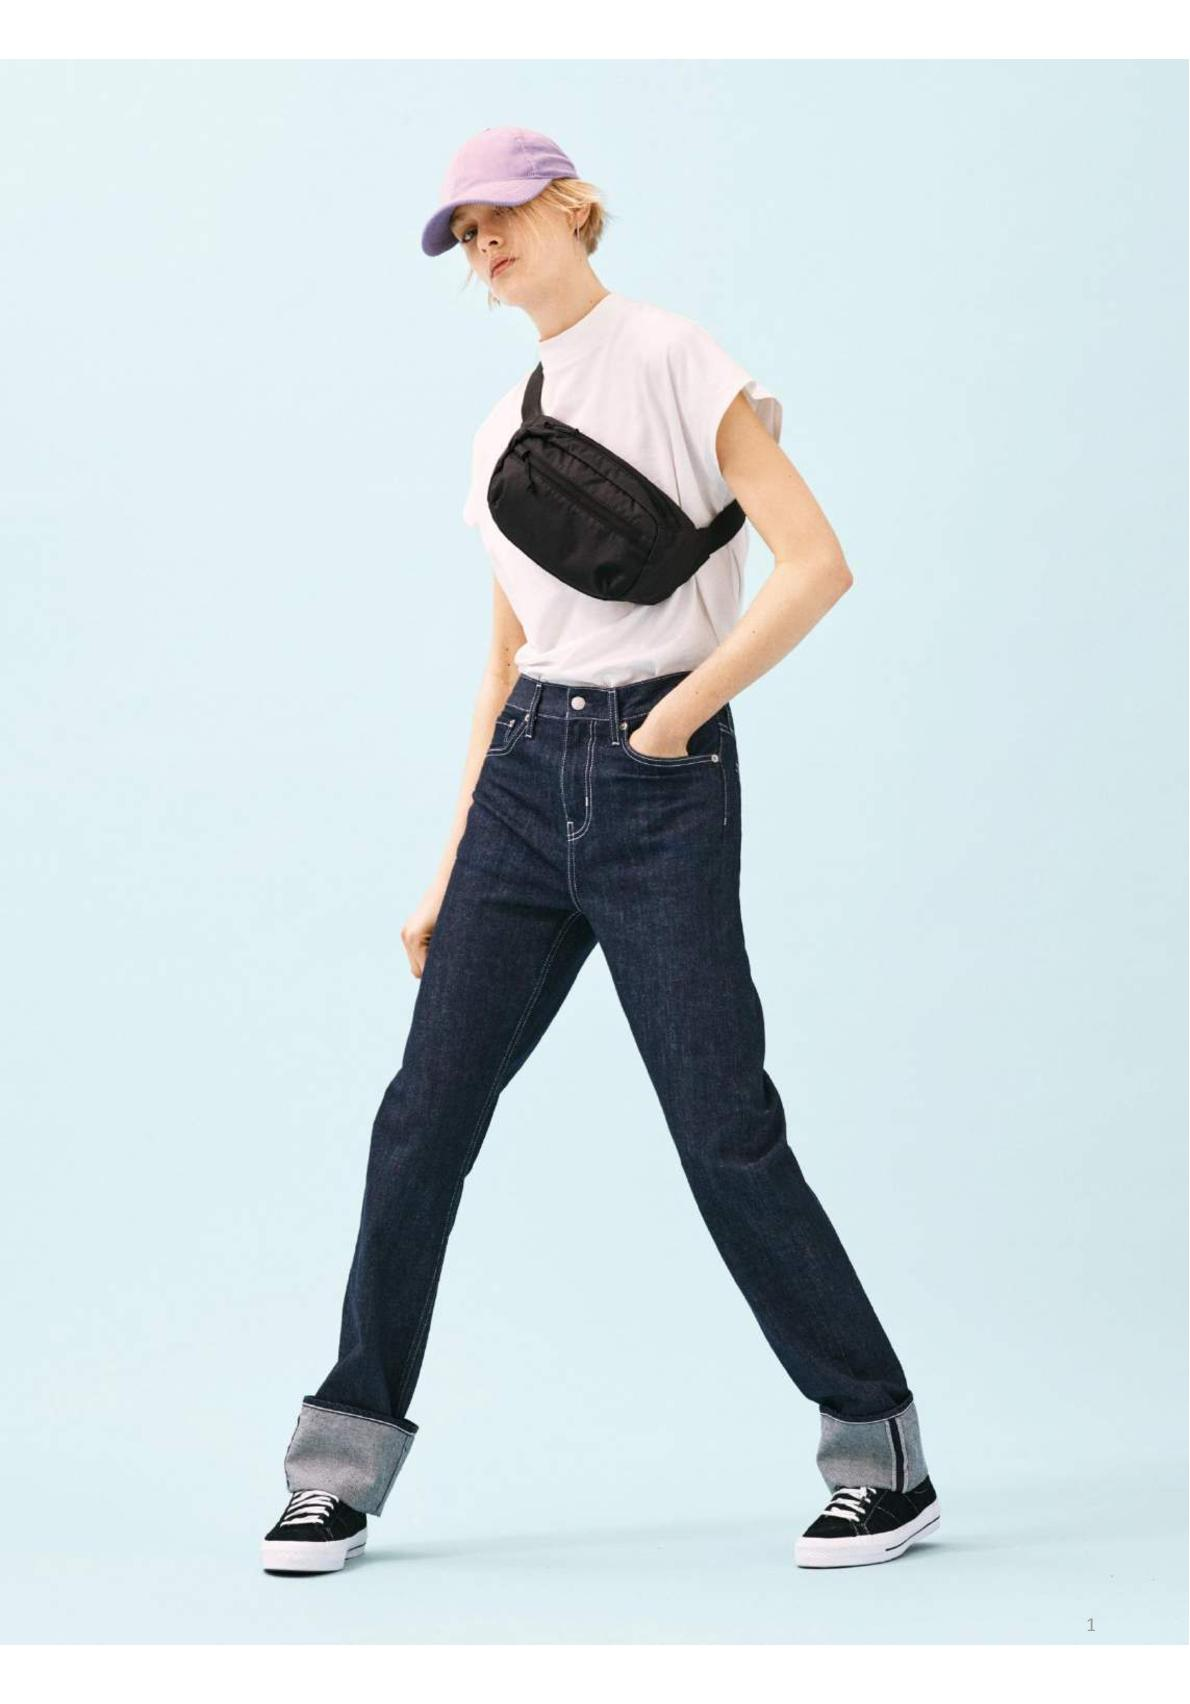 bb_weekday_ss17_lookbook_jean_campaign_low_res-page-002.jpg